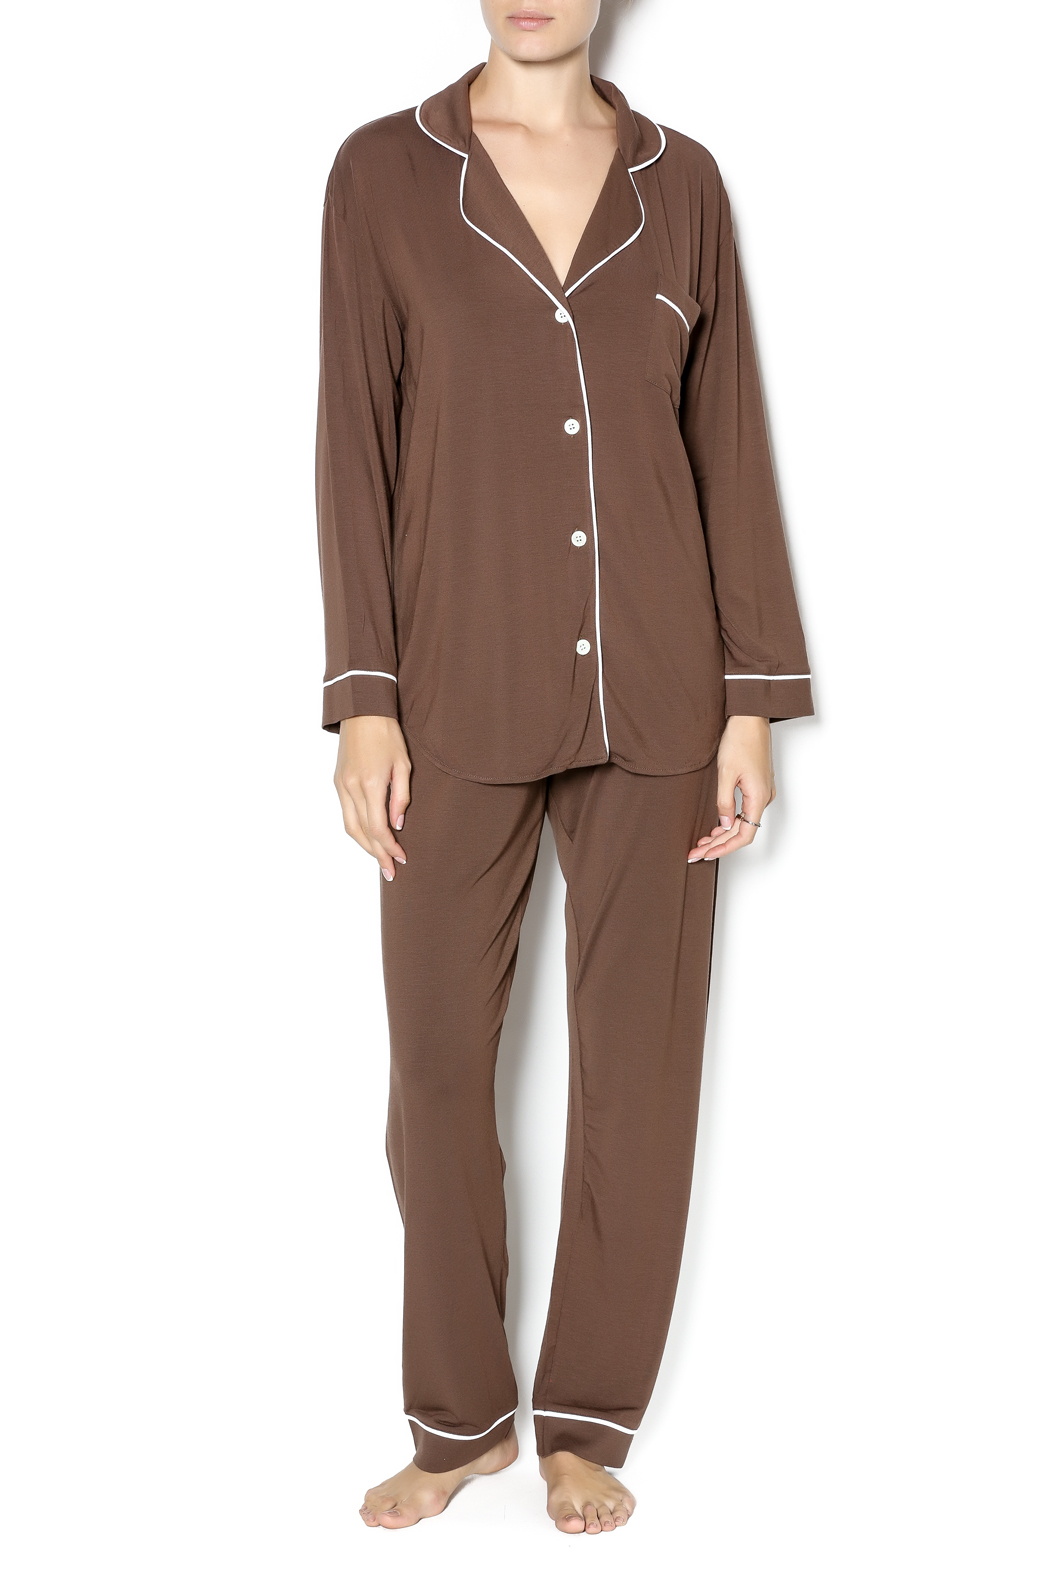 d6c62200bde0 Marigot Chocolate Brown Pajama Set from Edina by A La Mode Boutique ...